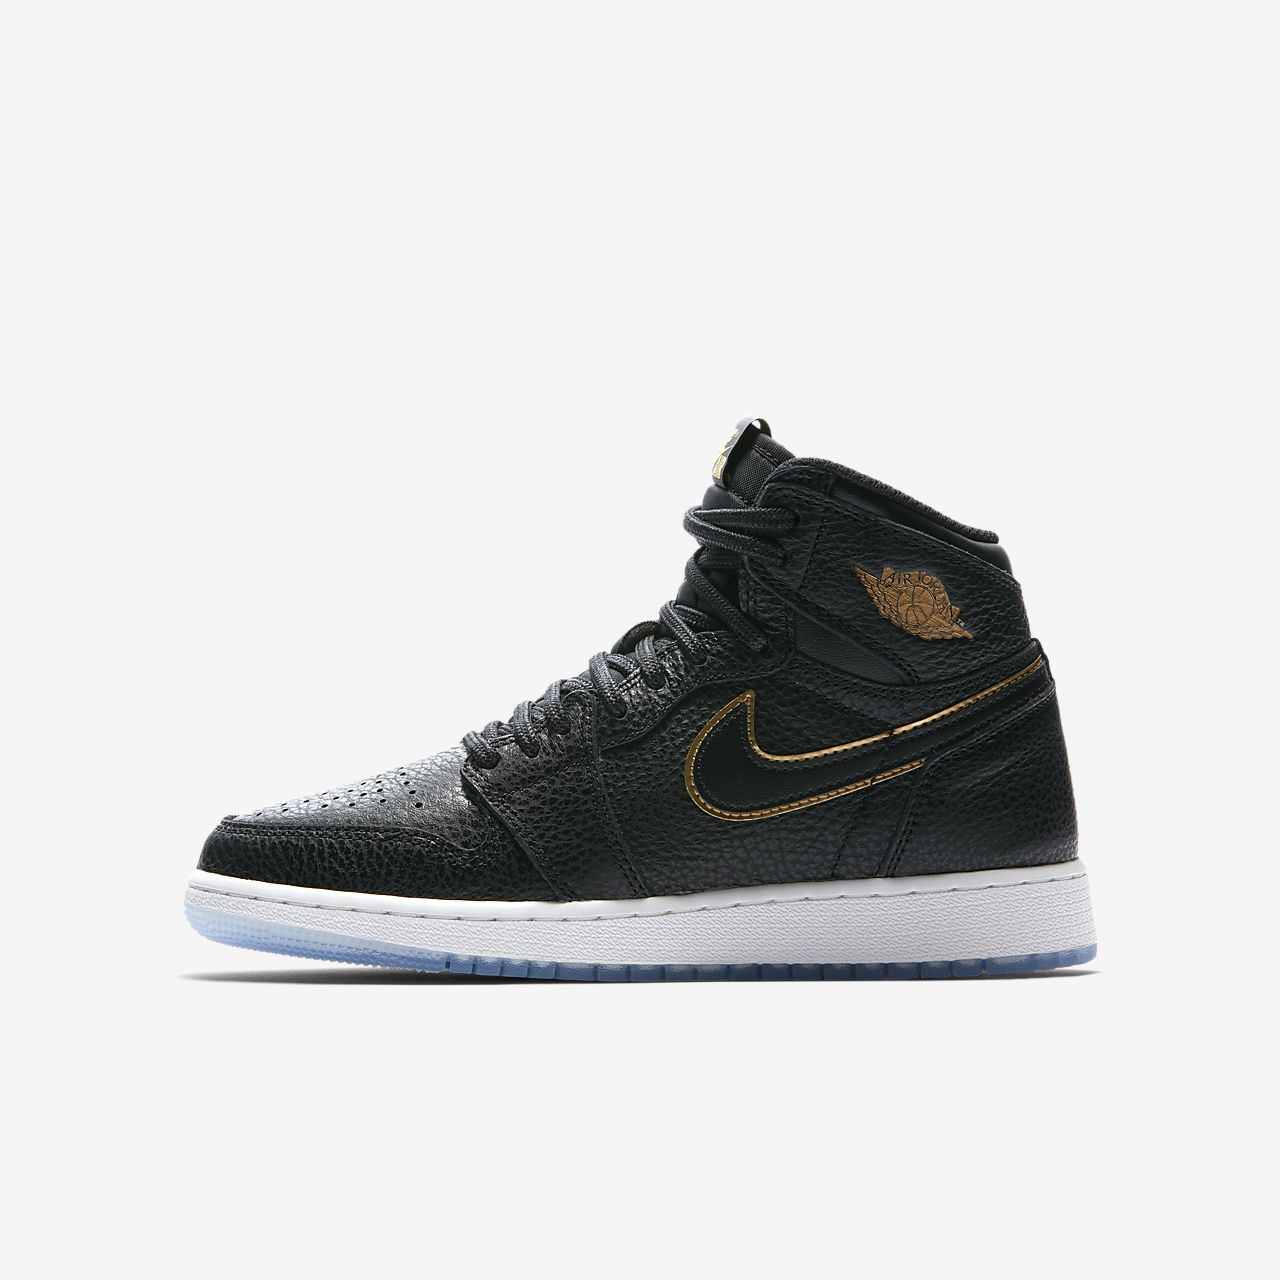 nike jordan 1 retro high og nz